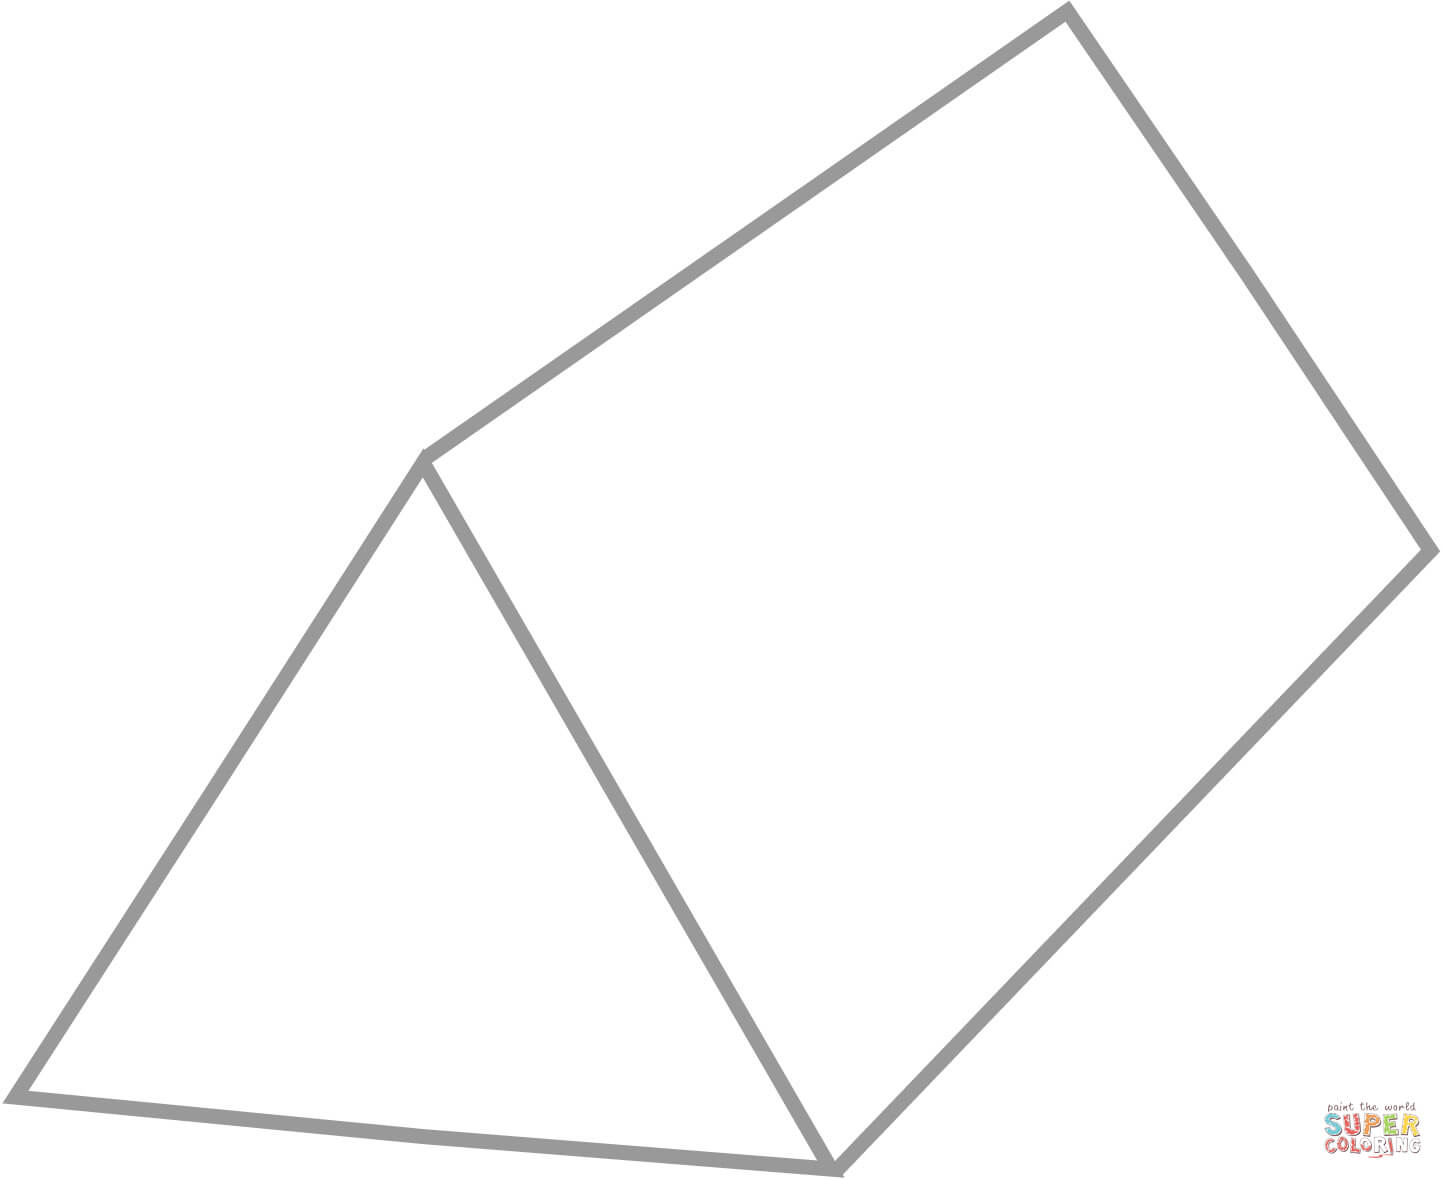 Triangular Prism Coloring Page